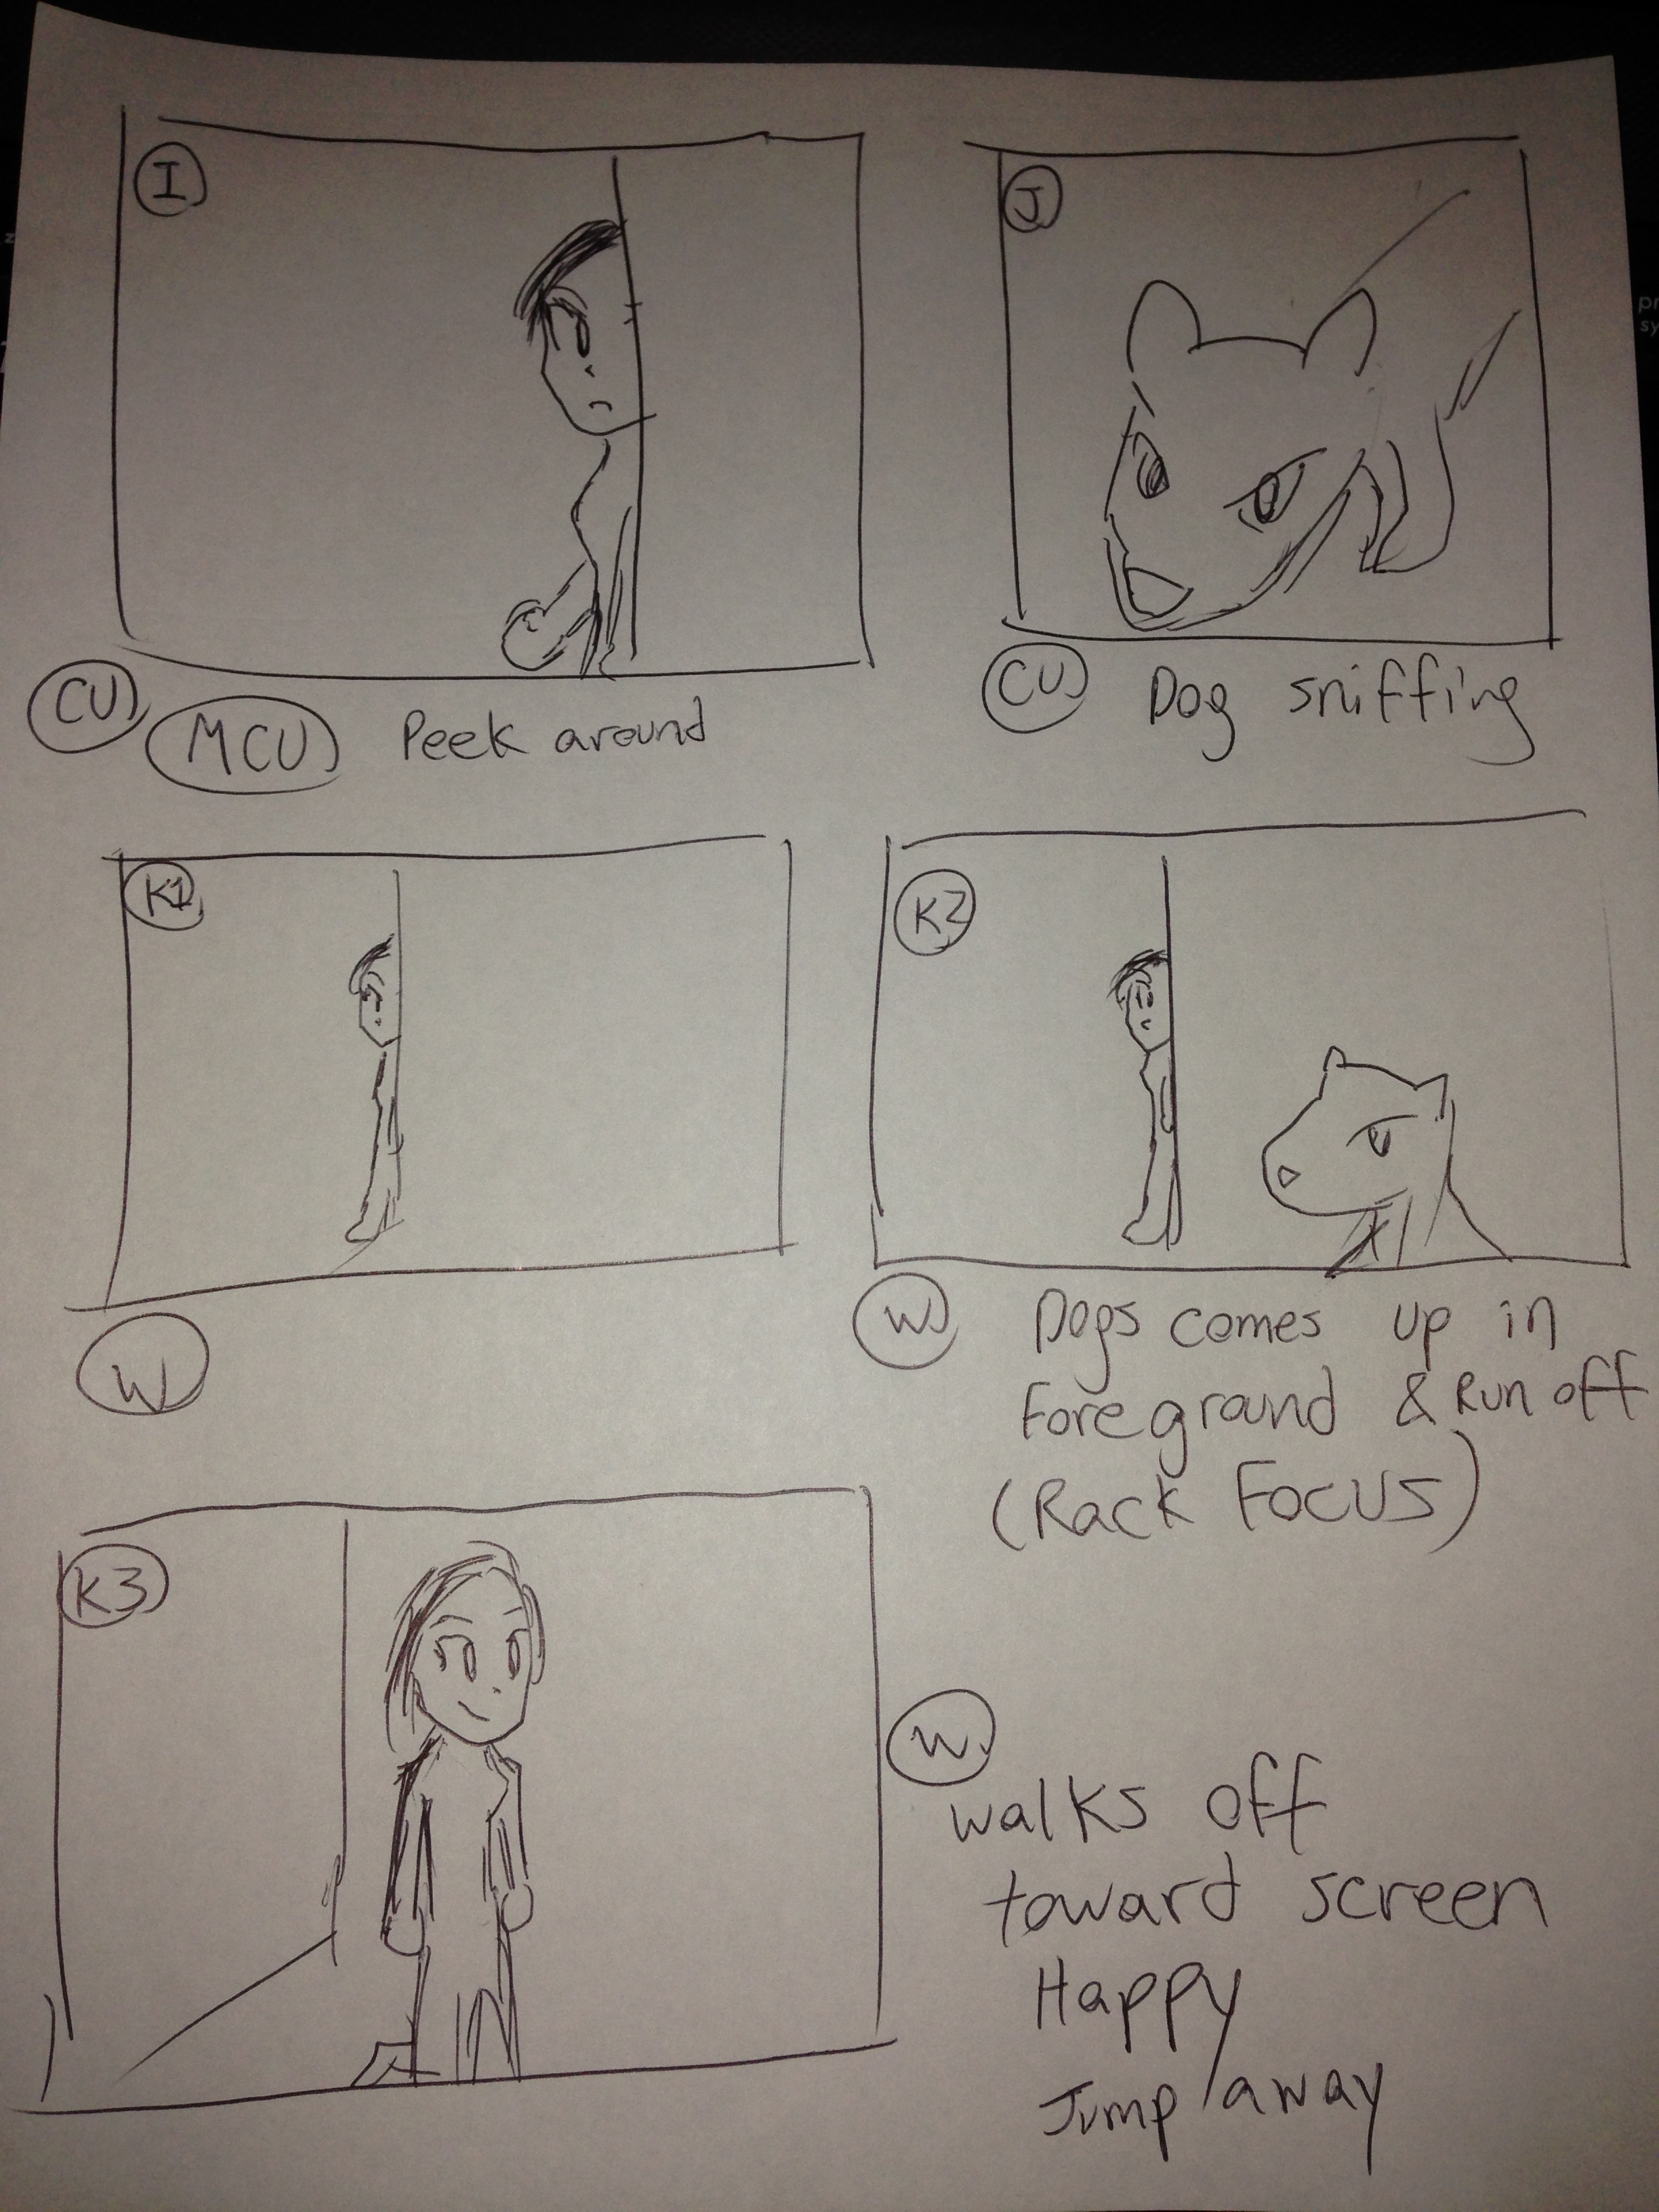 Storyboard Page 3 of 3.JPG